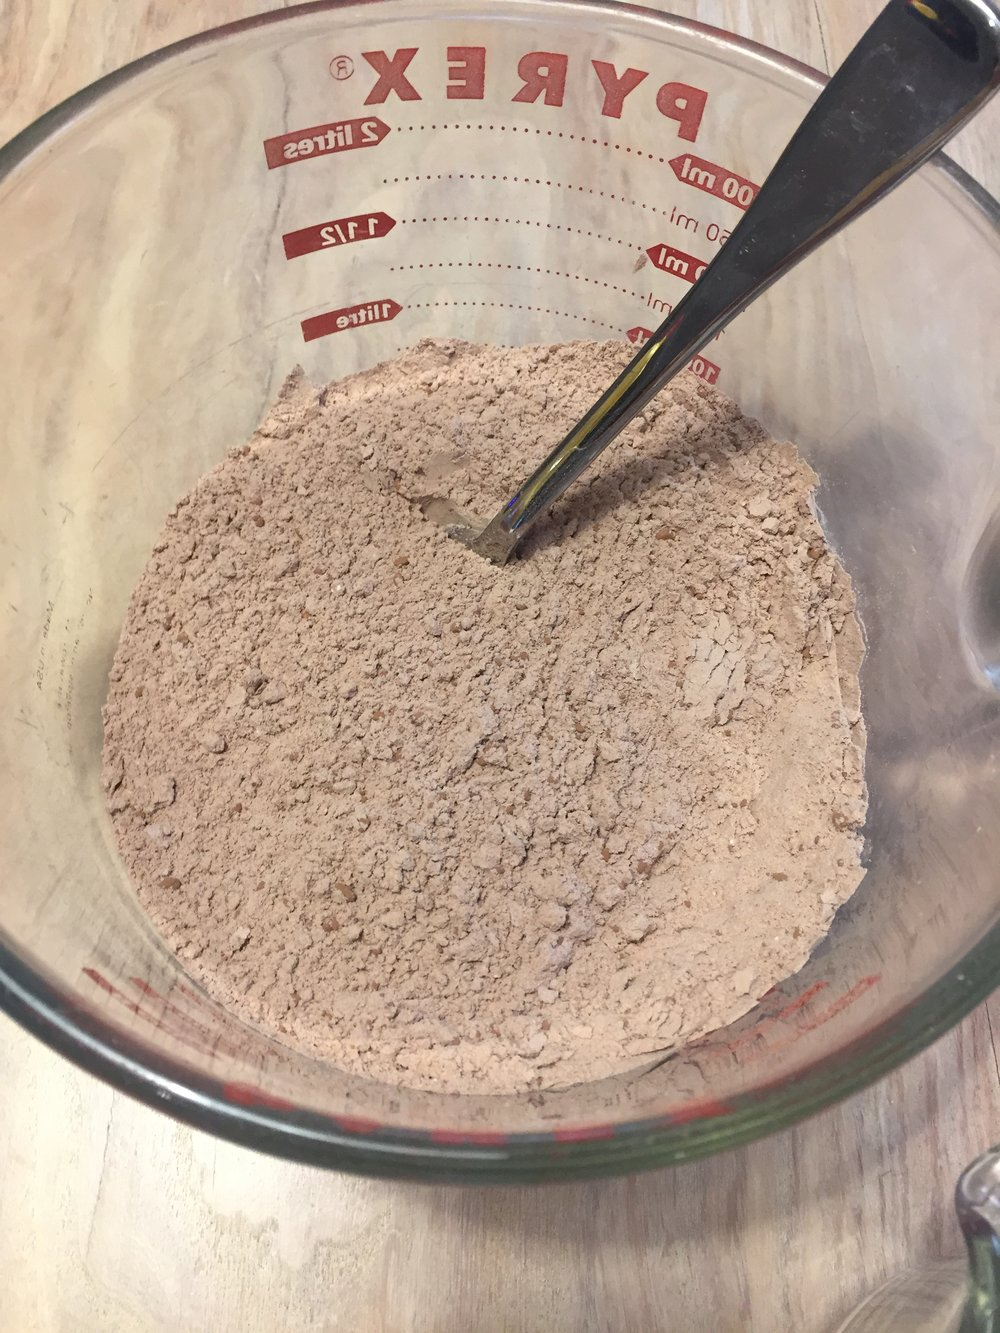 Mix the flour, cocoa, baking soda, and salt.